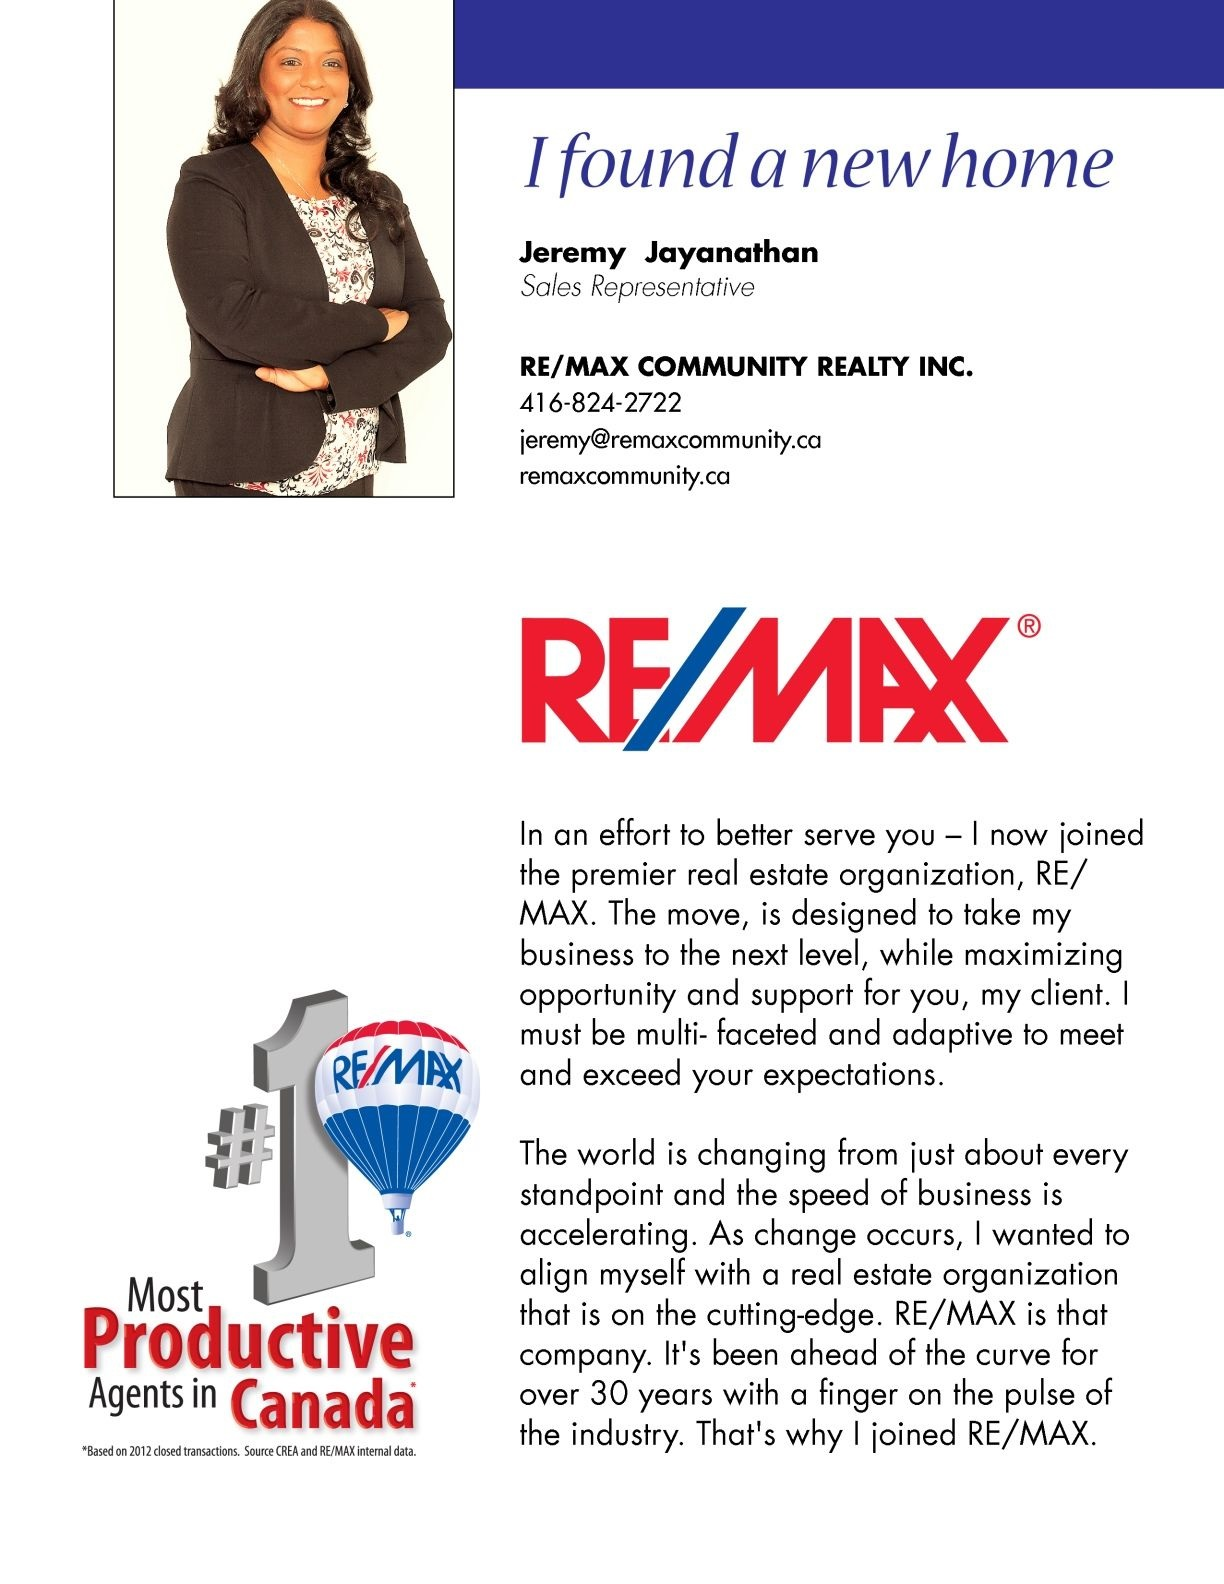 002 Unbelievable Real Estate Marketing Letter Example High Resolution  Examples Agent SampleFull